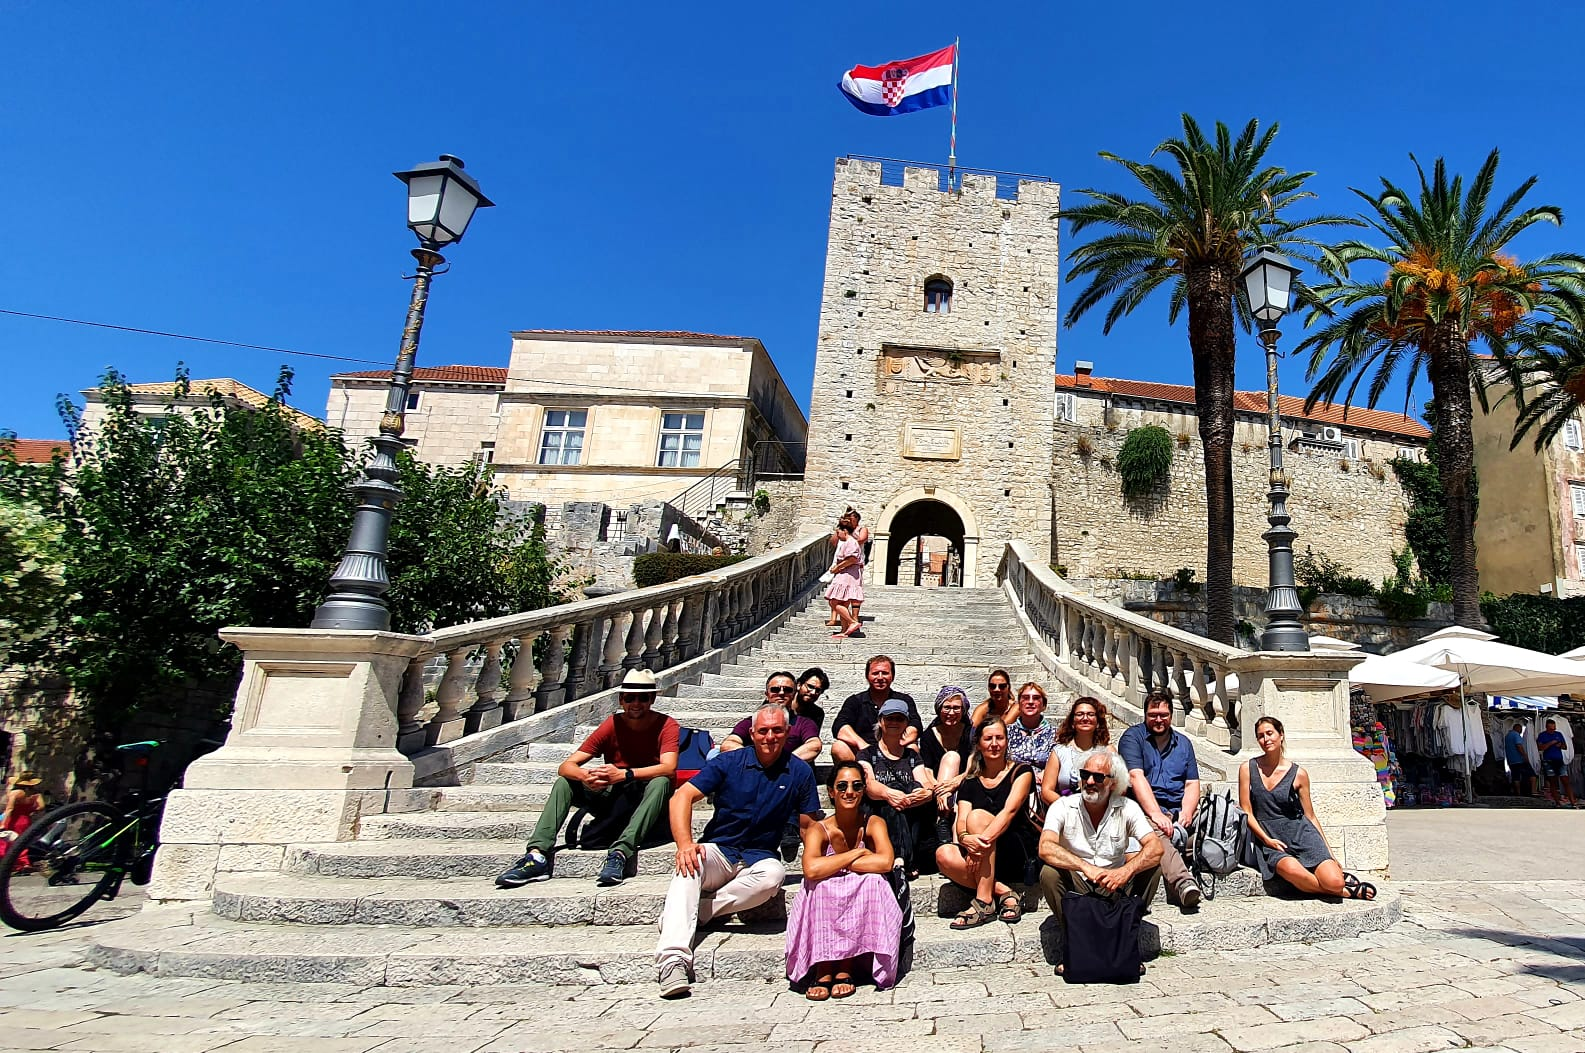 Our trip to Dubrovnik was remarkable! Here is what we did